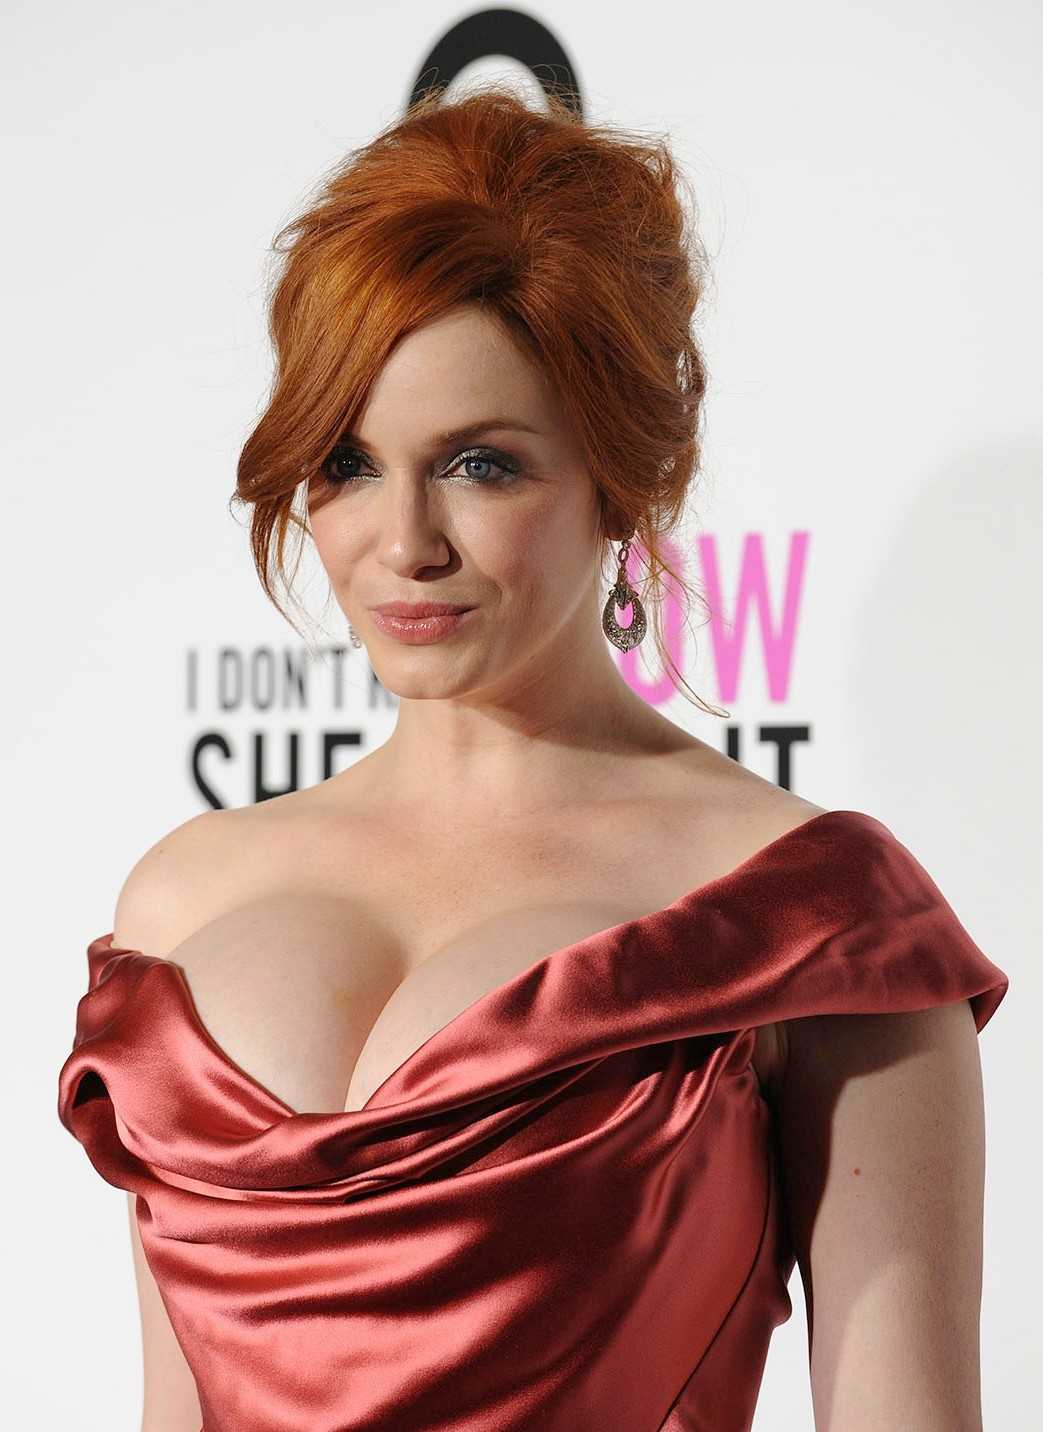 Christina Hendricks hot photos (2)